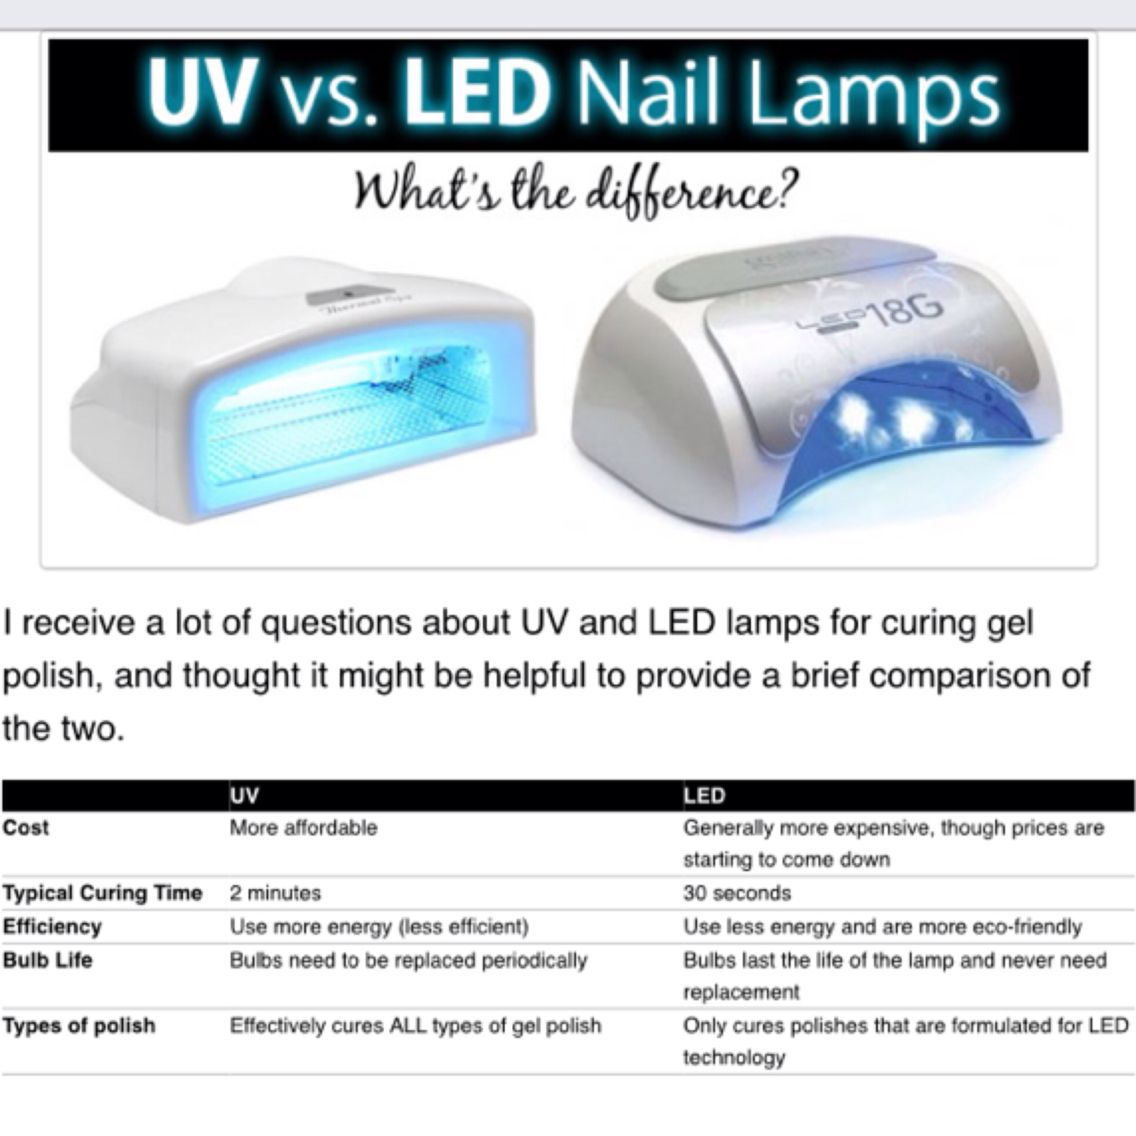 Gel Moment Polish Is Special Formulated For Led Lamps What S The Difference Between Uv And Led Here S A Led Nail Lamp Acrylic Nails At Home Gel Nail Tutorial